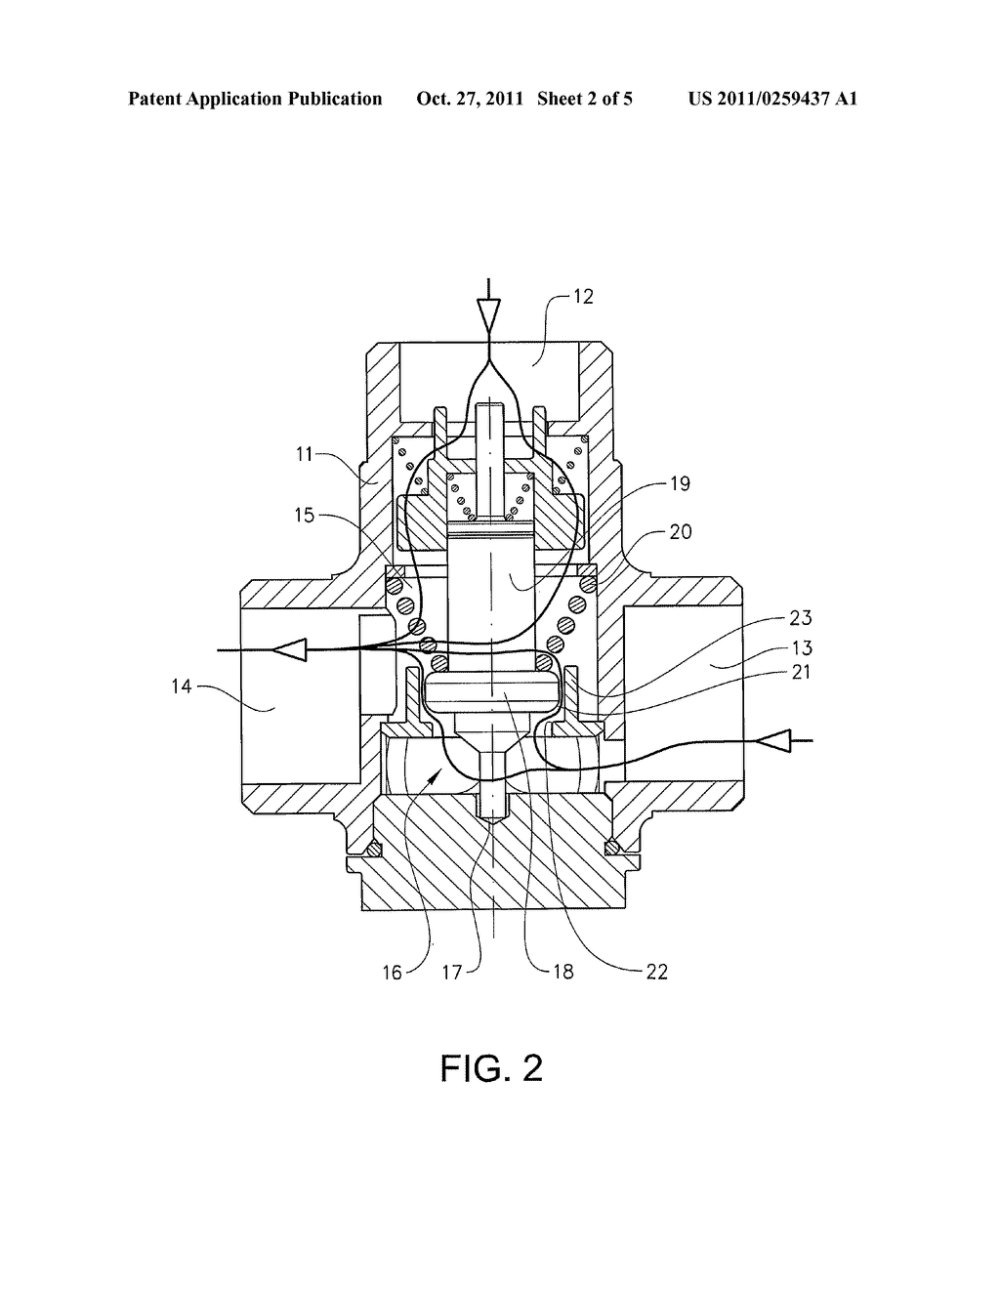 medium resolution of thermostatic mixing valve for a domestic heating system diagram schematic and image 03